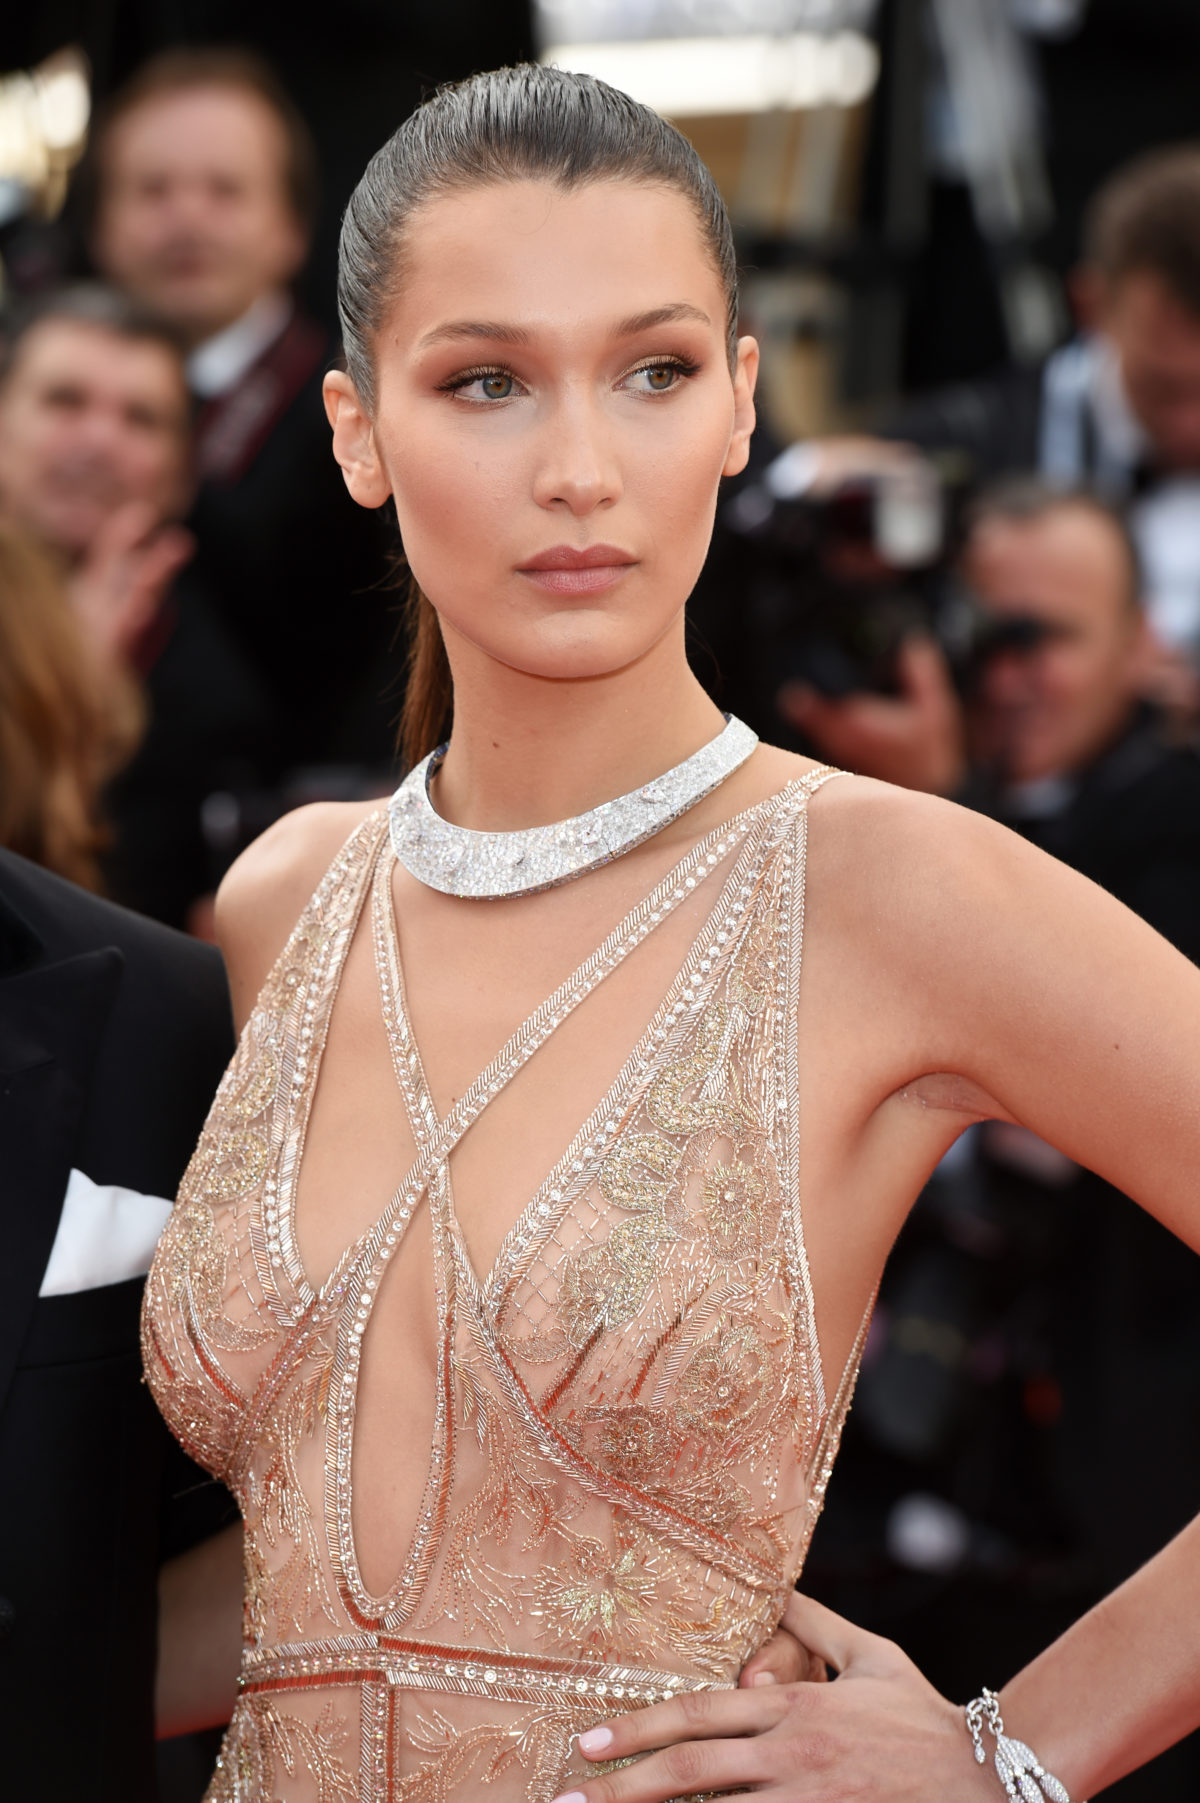 The Trick To Bella Hadid's Clean Makeup Look